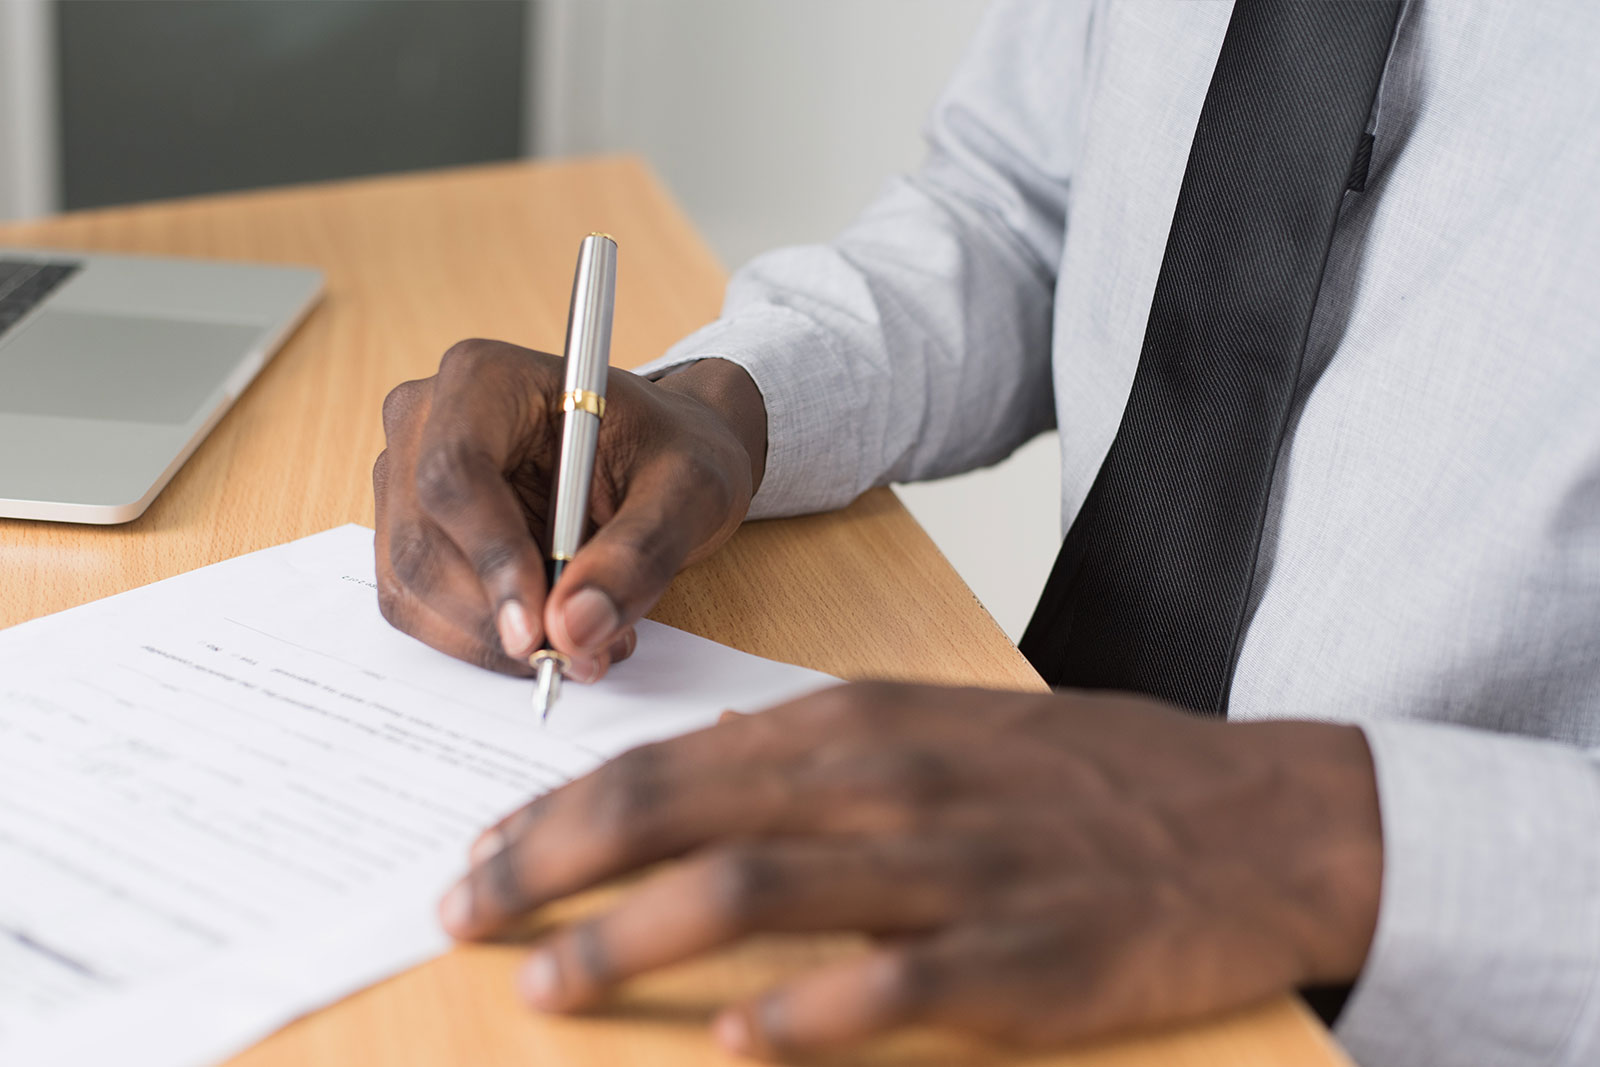 Professional man signing a document, image of hands only